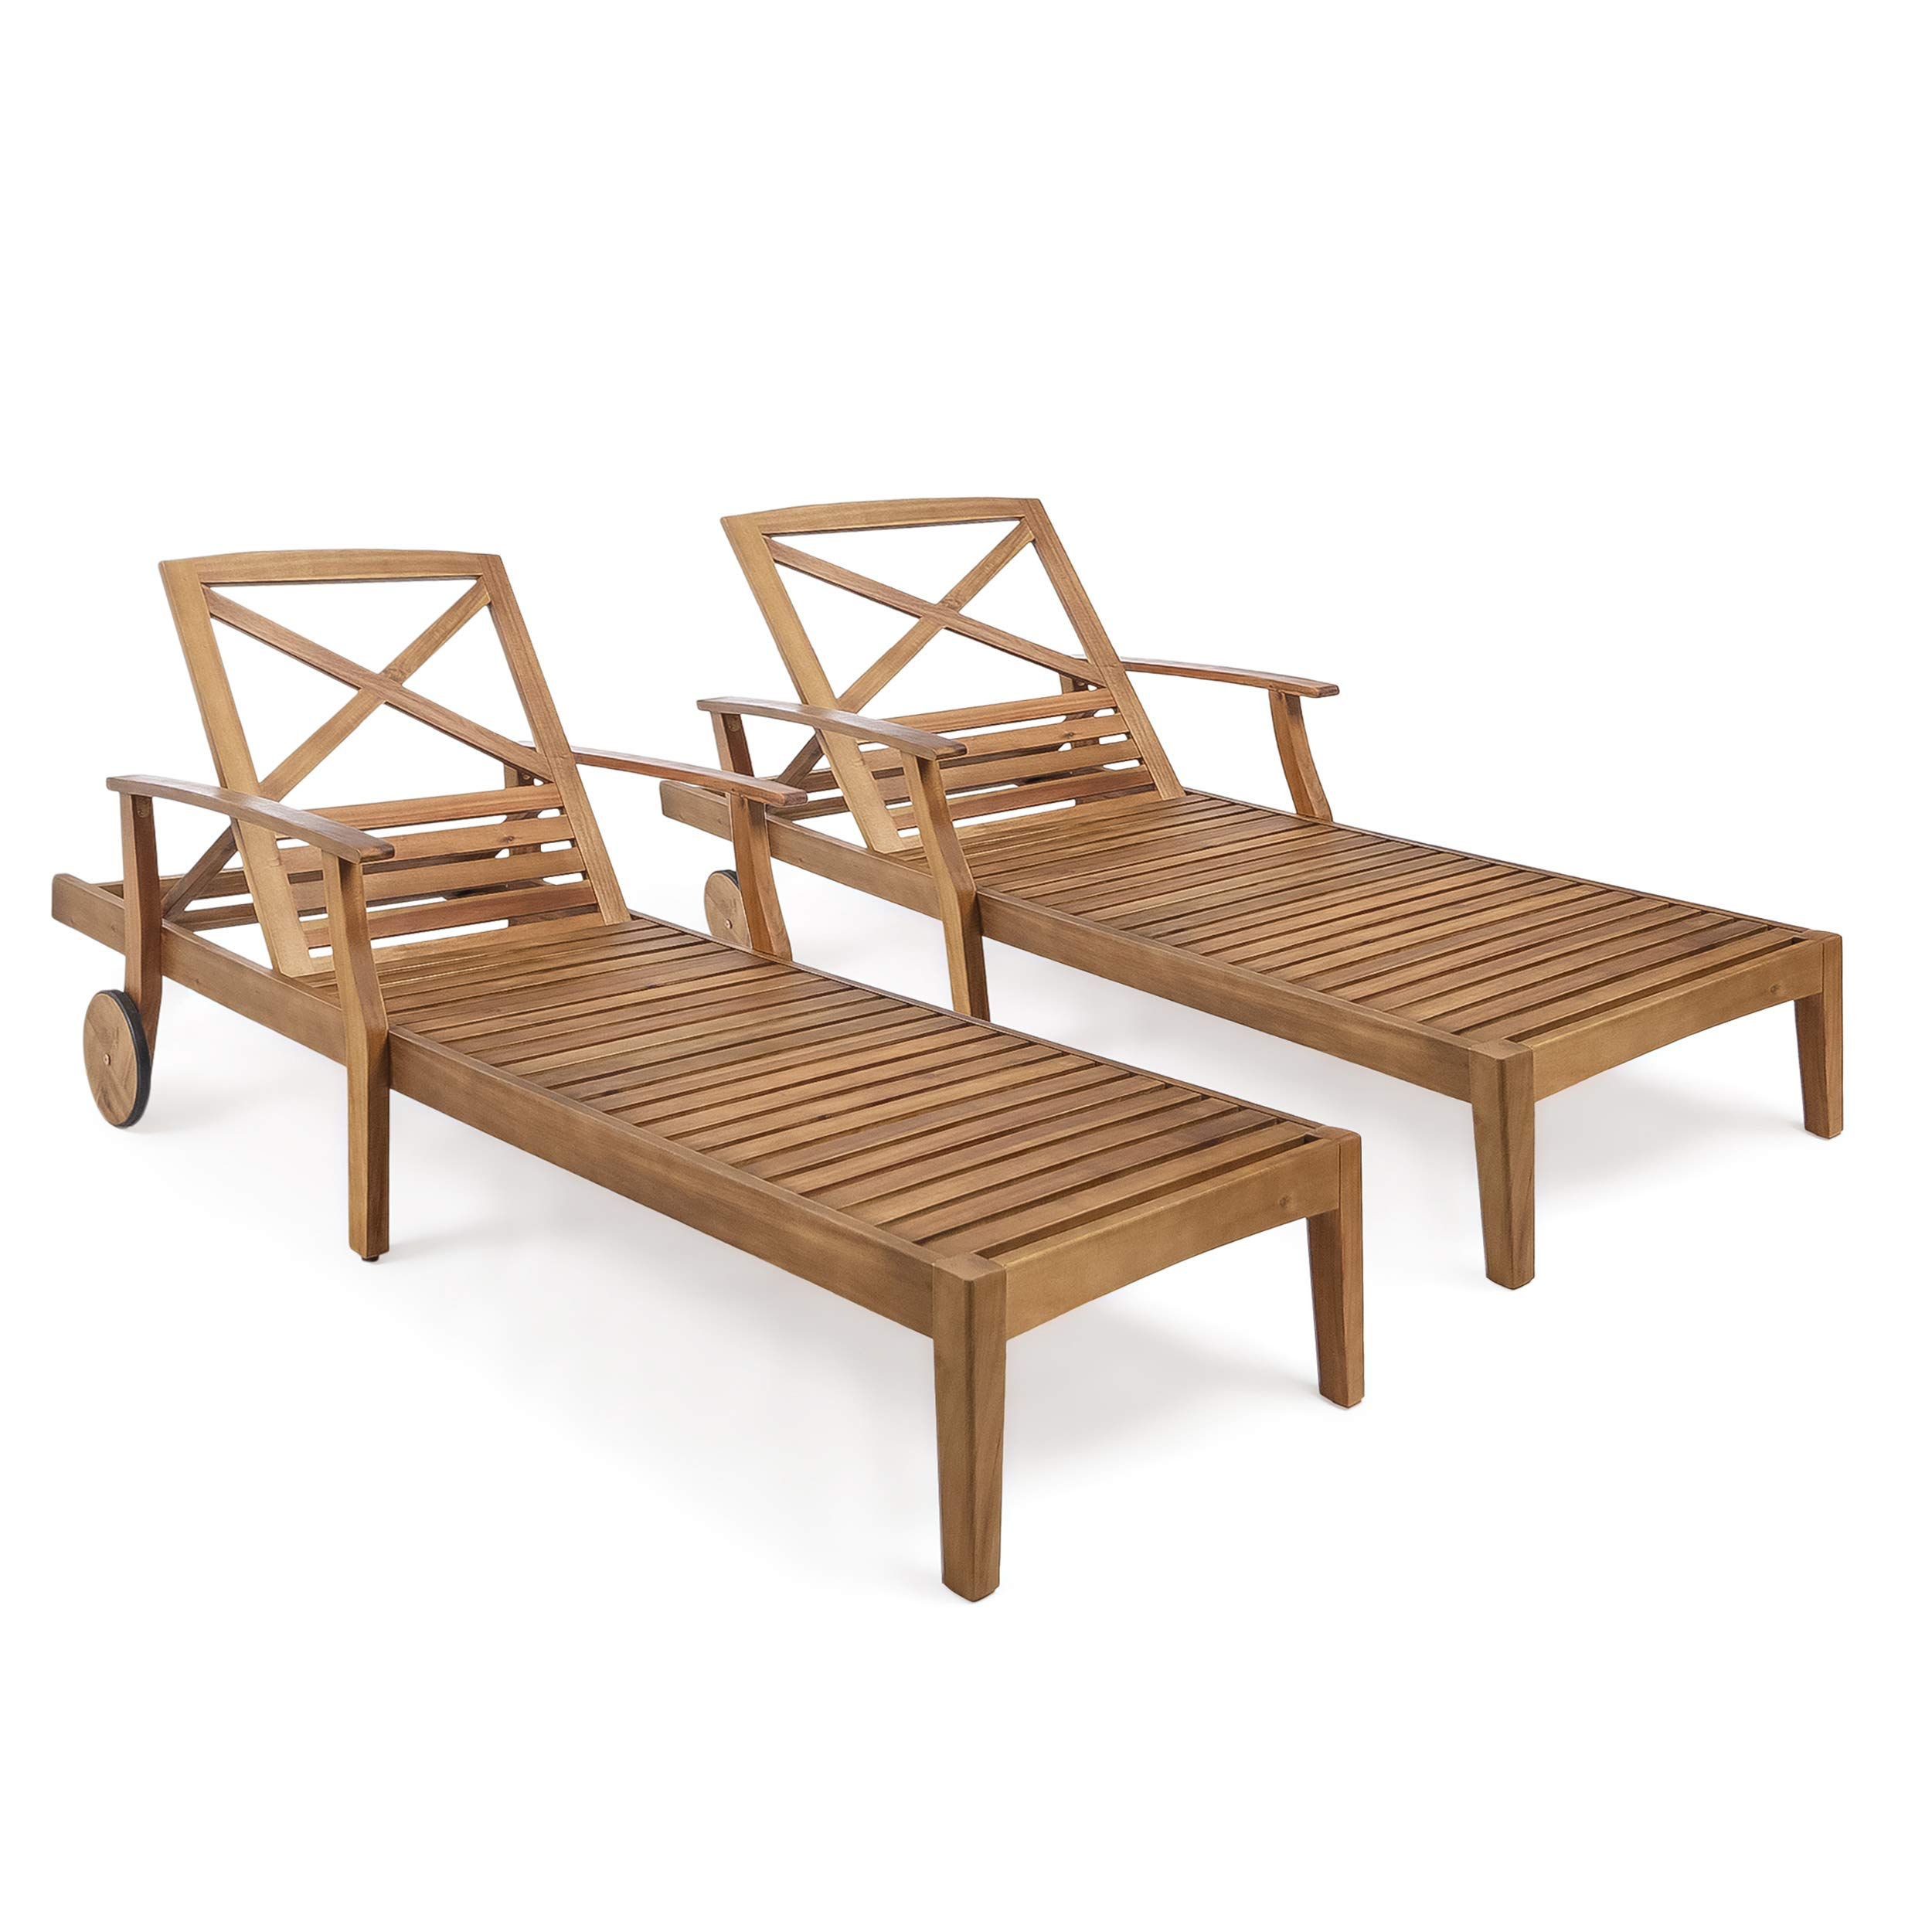 Great Deal Furniture Thalia Outdoor Teak Finished Acacia Wood Chaise Lounge (Set of 2)